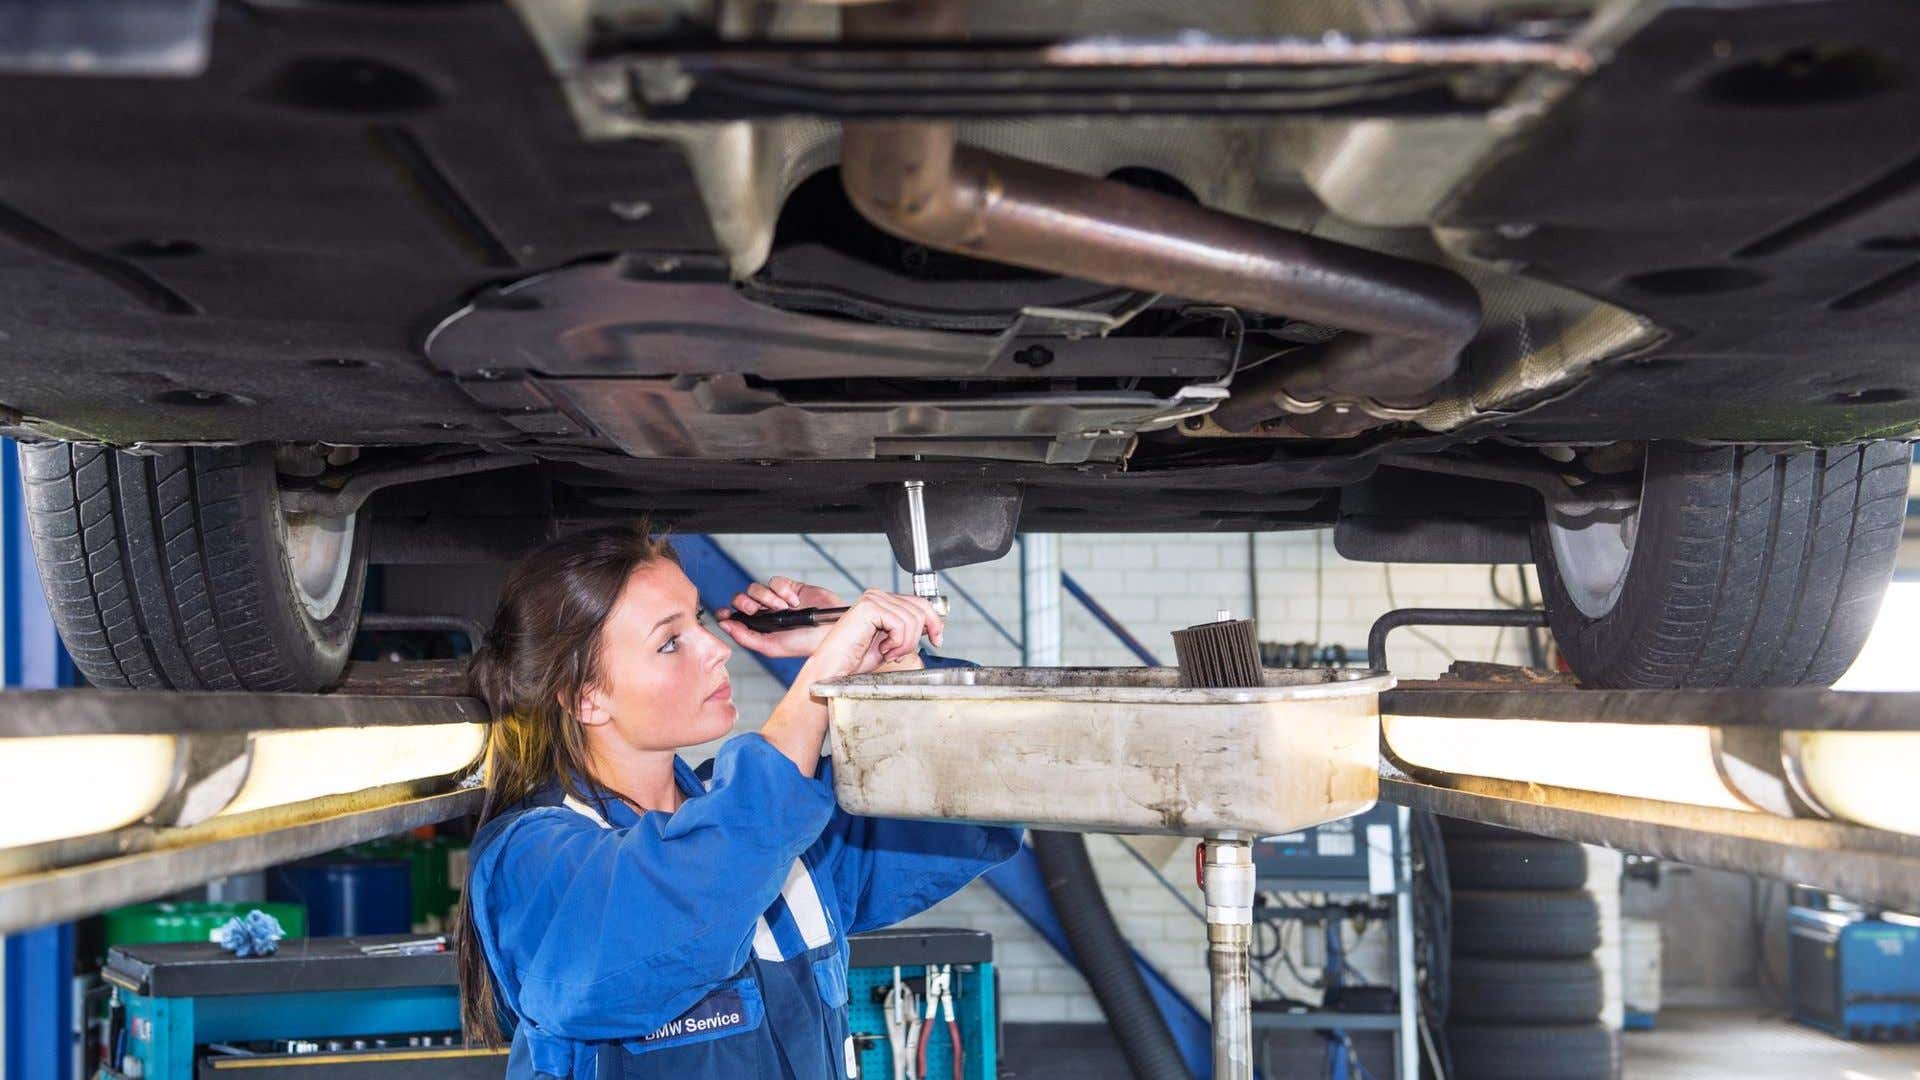 A female mechanic changes a car's oil.